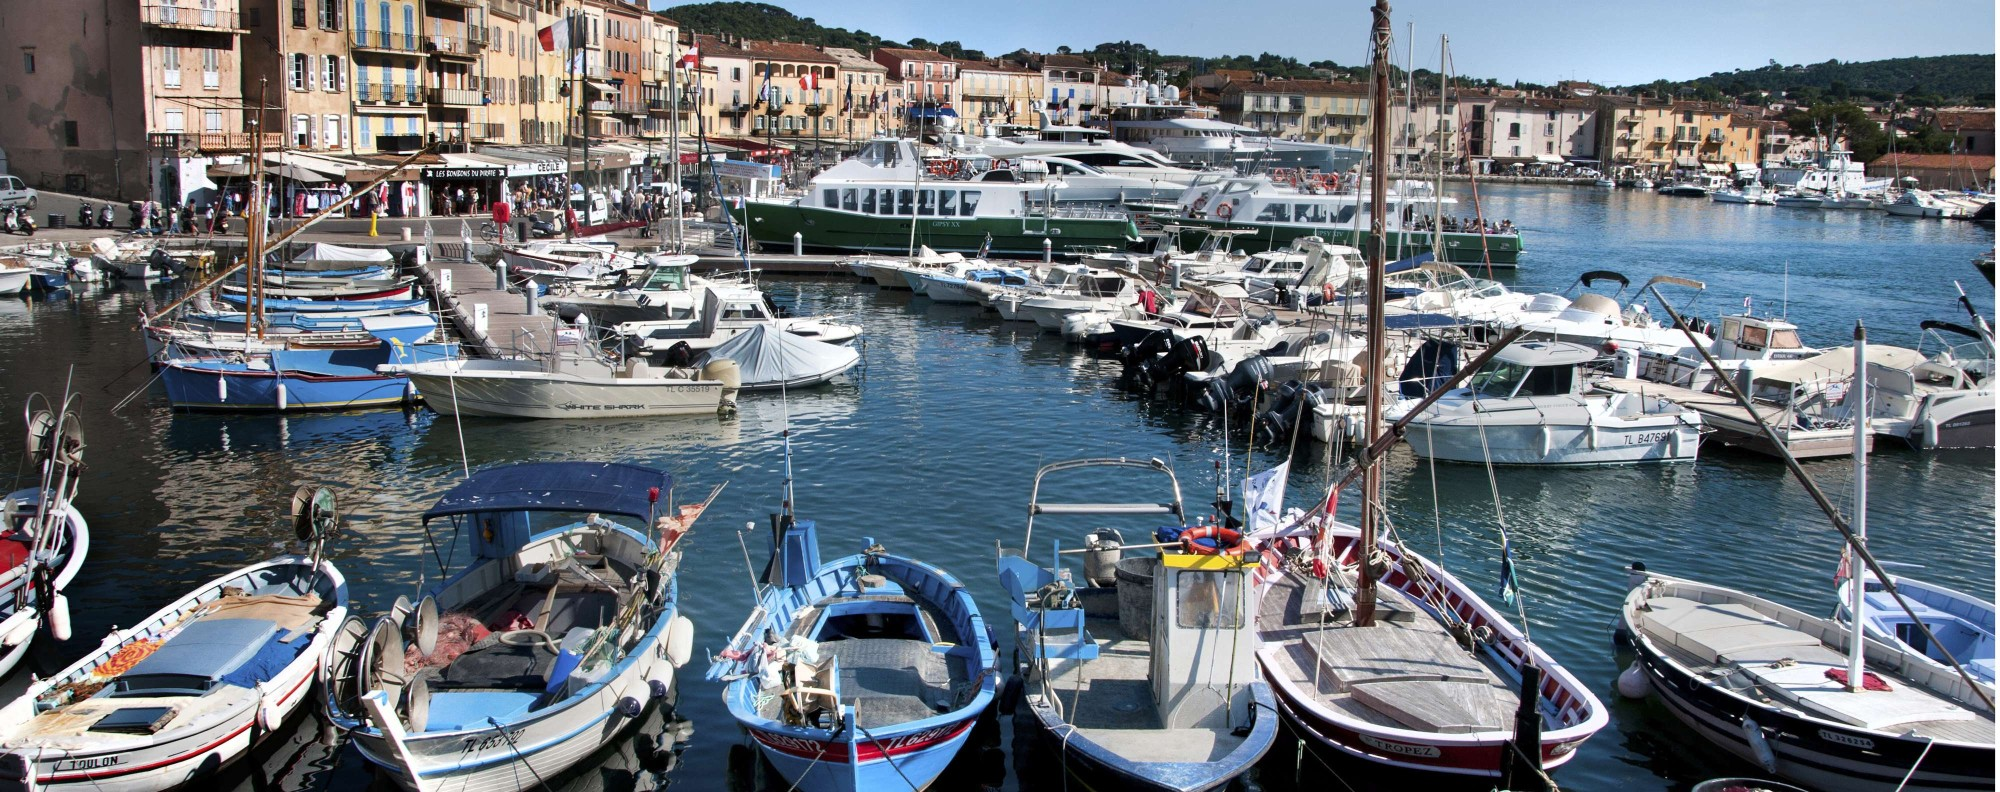 The St Tropez harbour. Picture: Alamy